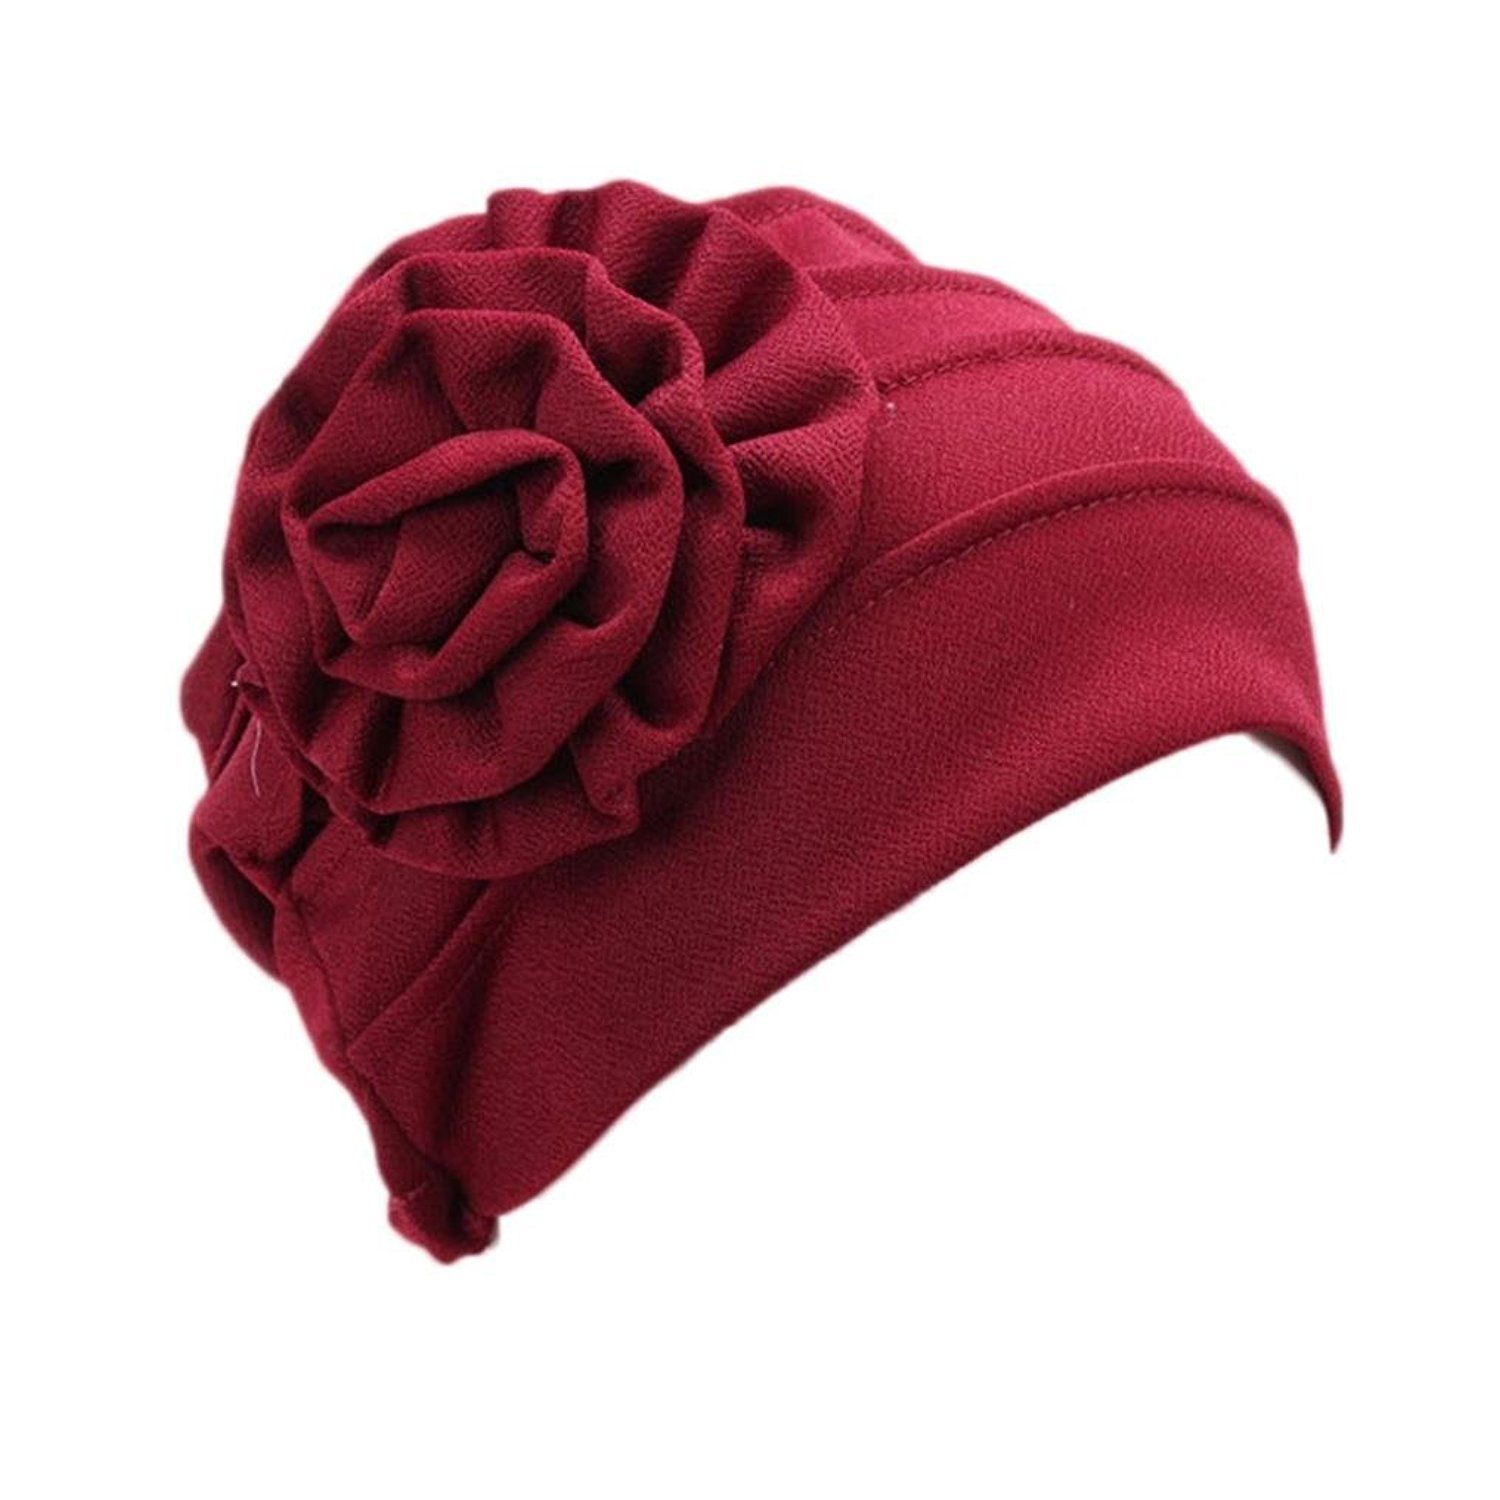 Tonsee® Women Stretch Turban Hat Chemo Cap Hair Loss Head Scarf Wrap Hijab Cap Tonsee Hat